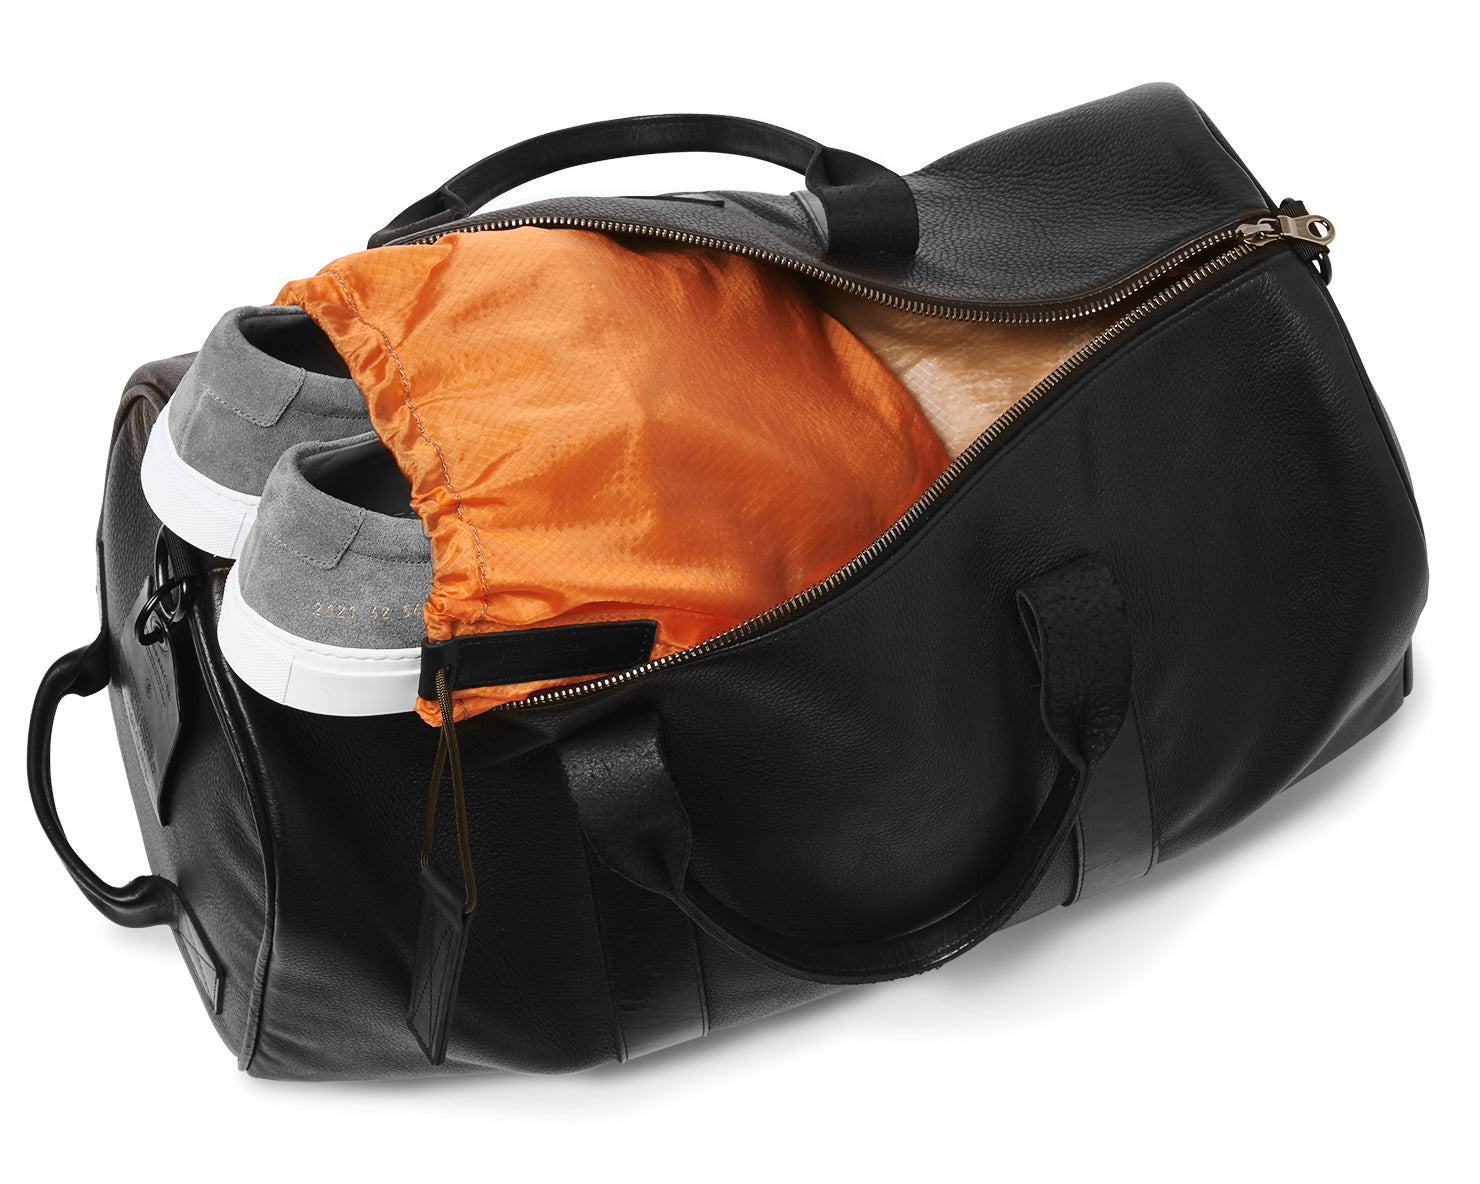 PARACHUTE BAG 2.0 - Shoe Bag | KILLSPENCER® - Orange Parachute